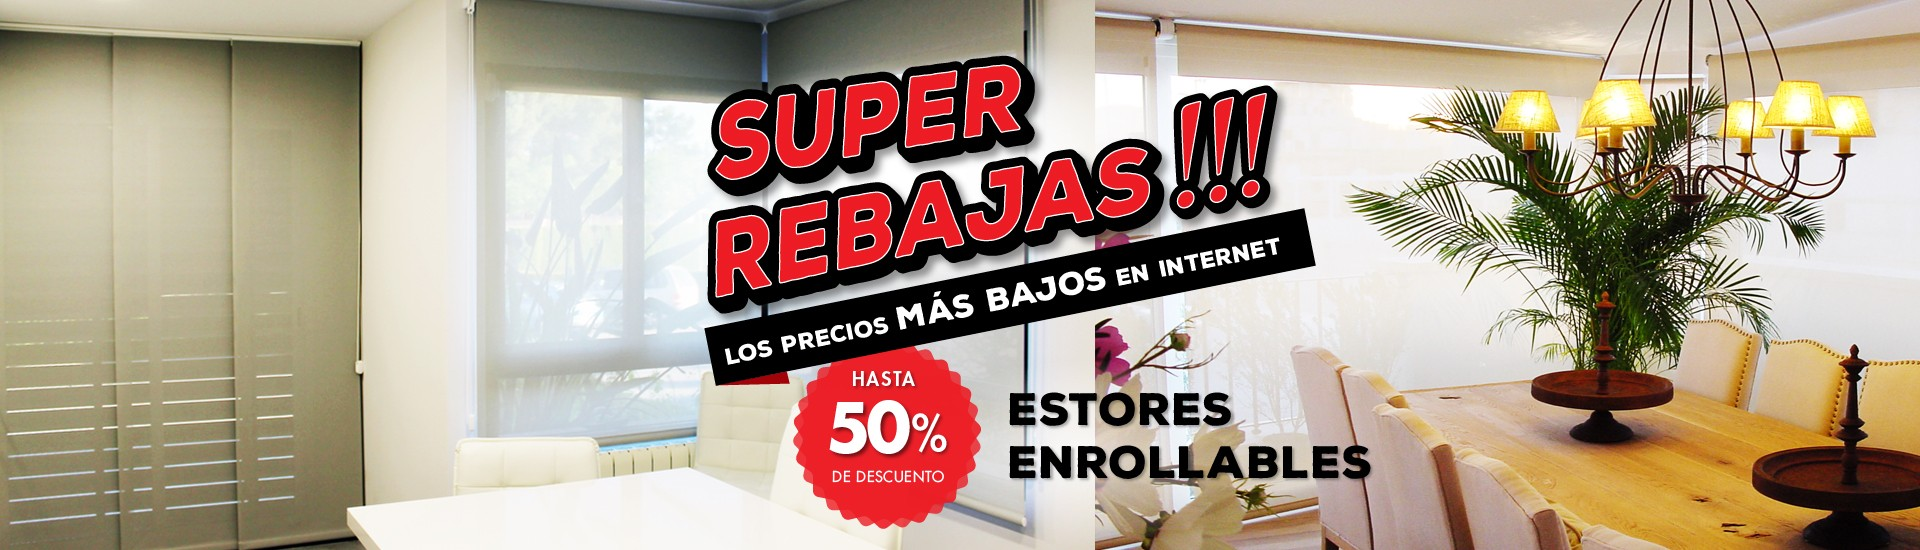 stores enrollables